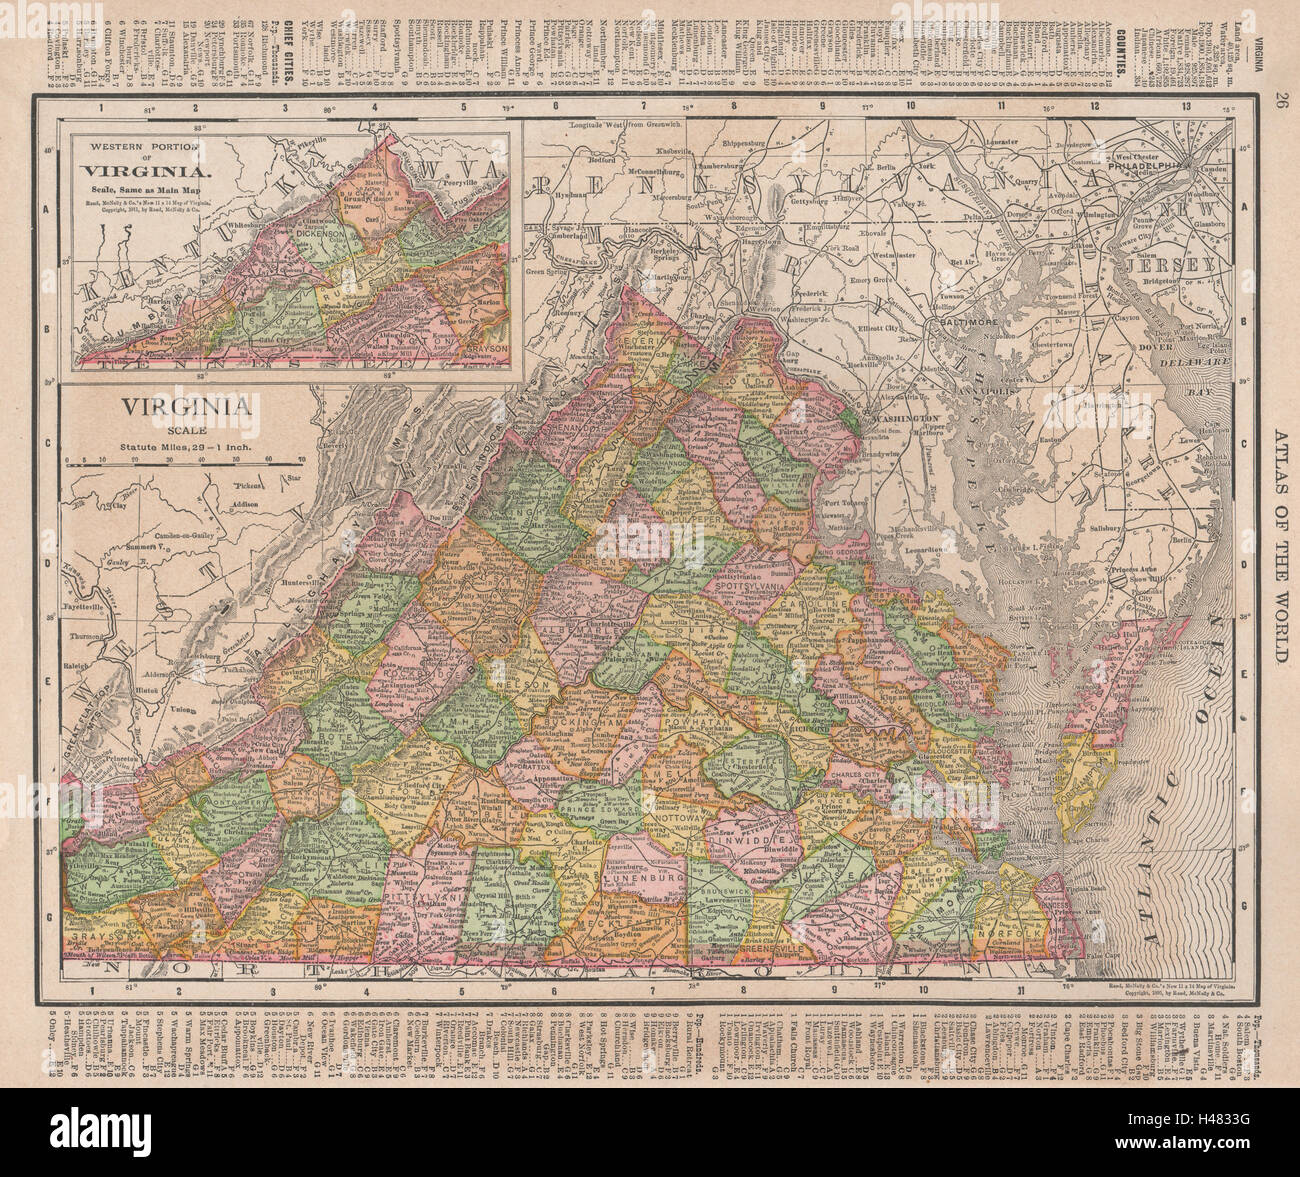 Virginia State Map Showing Counties Rand Mcnally 1912 Old Antique